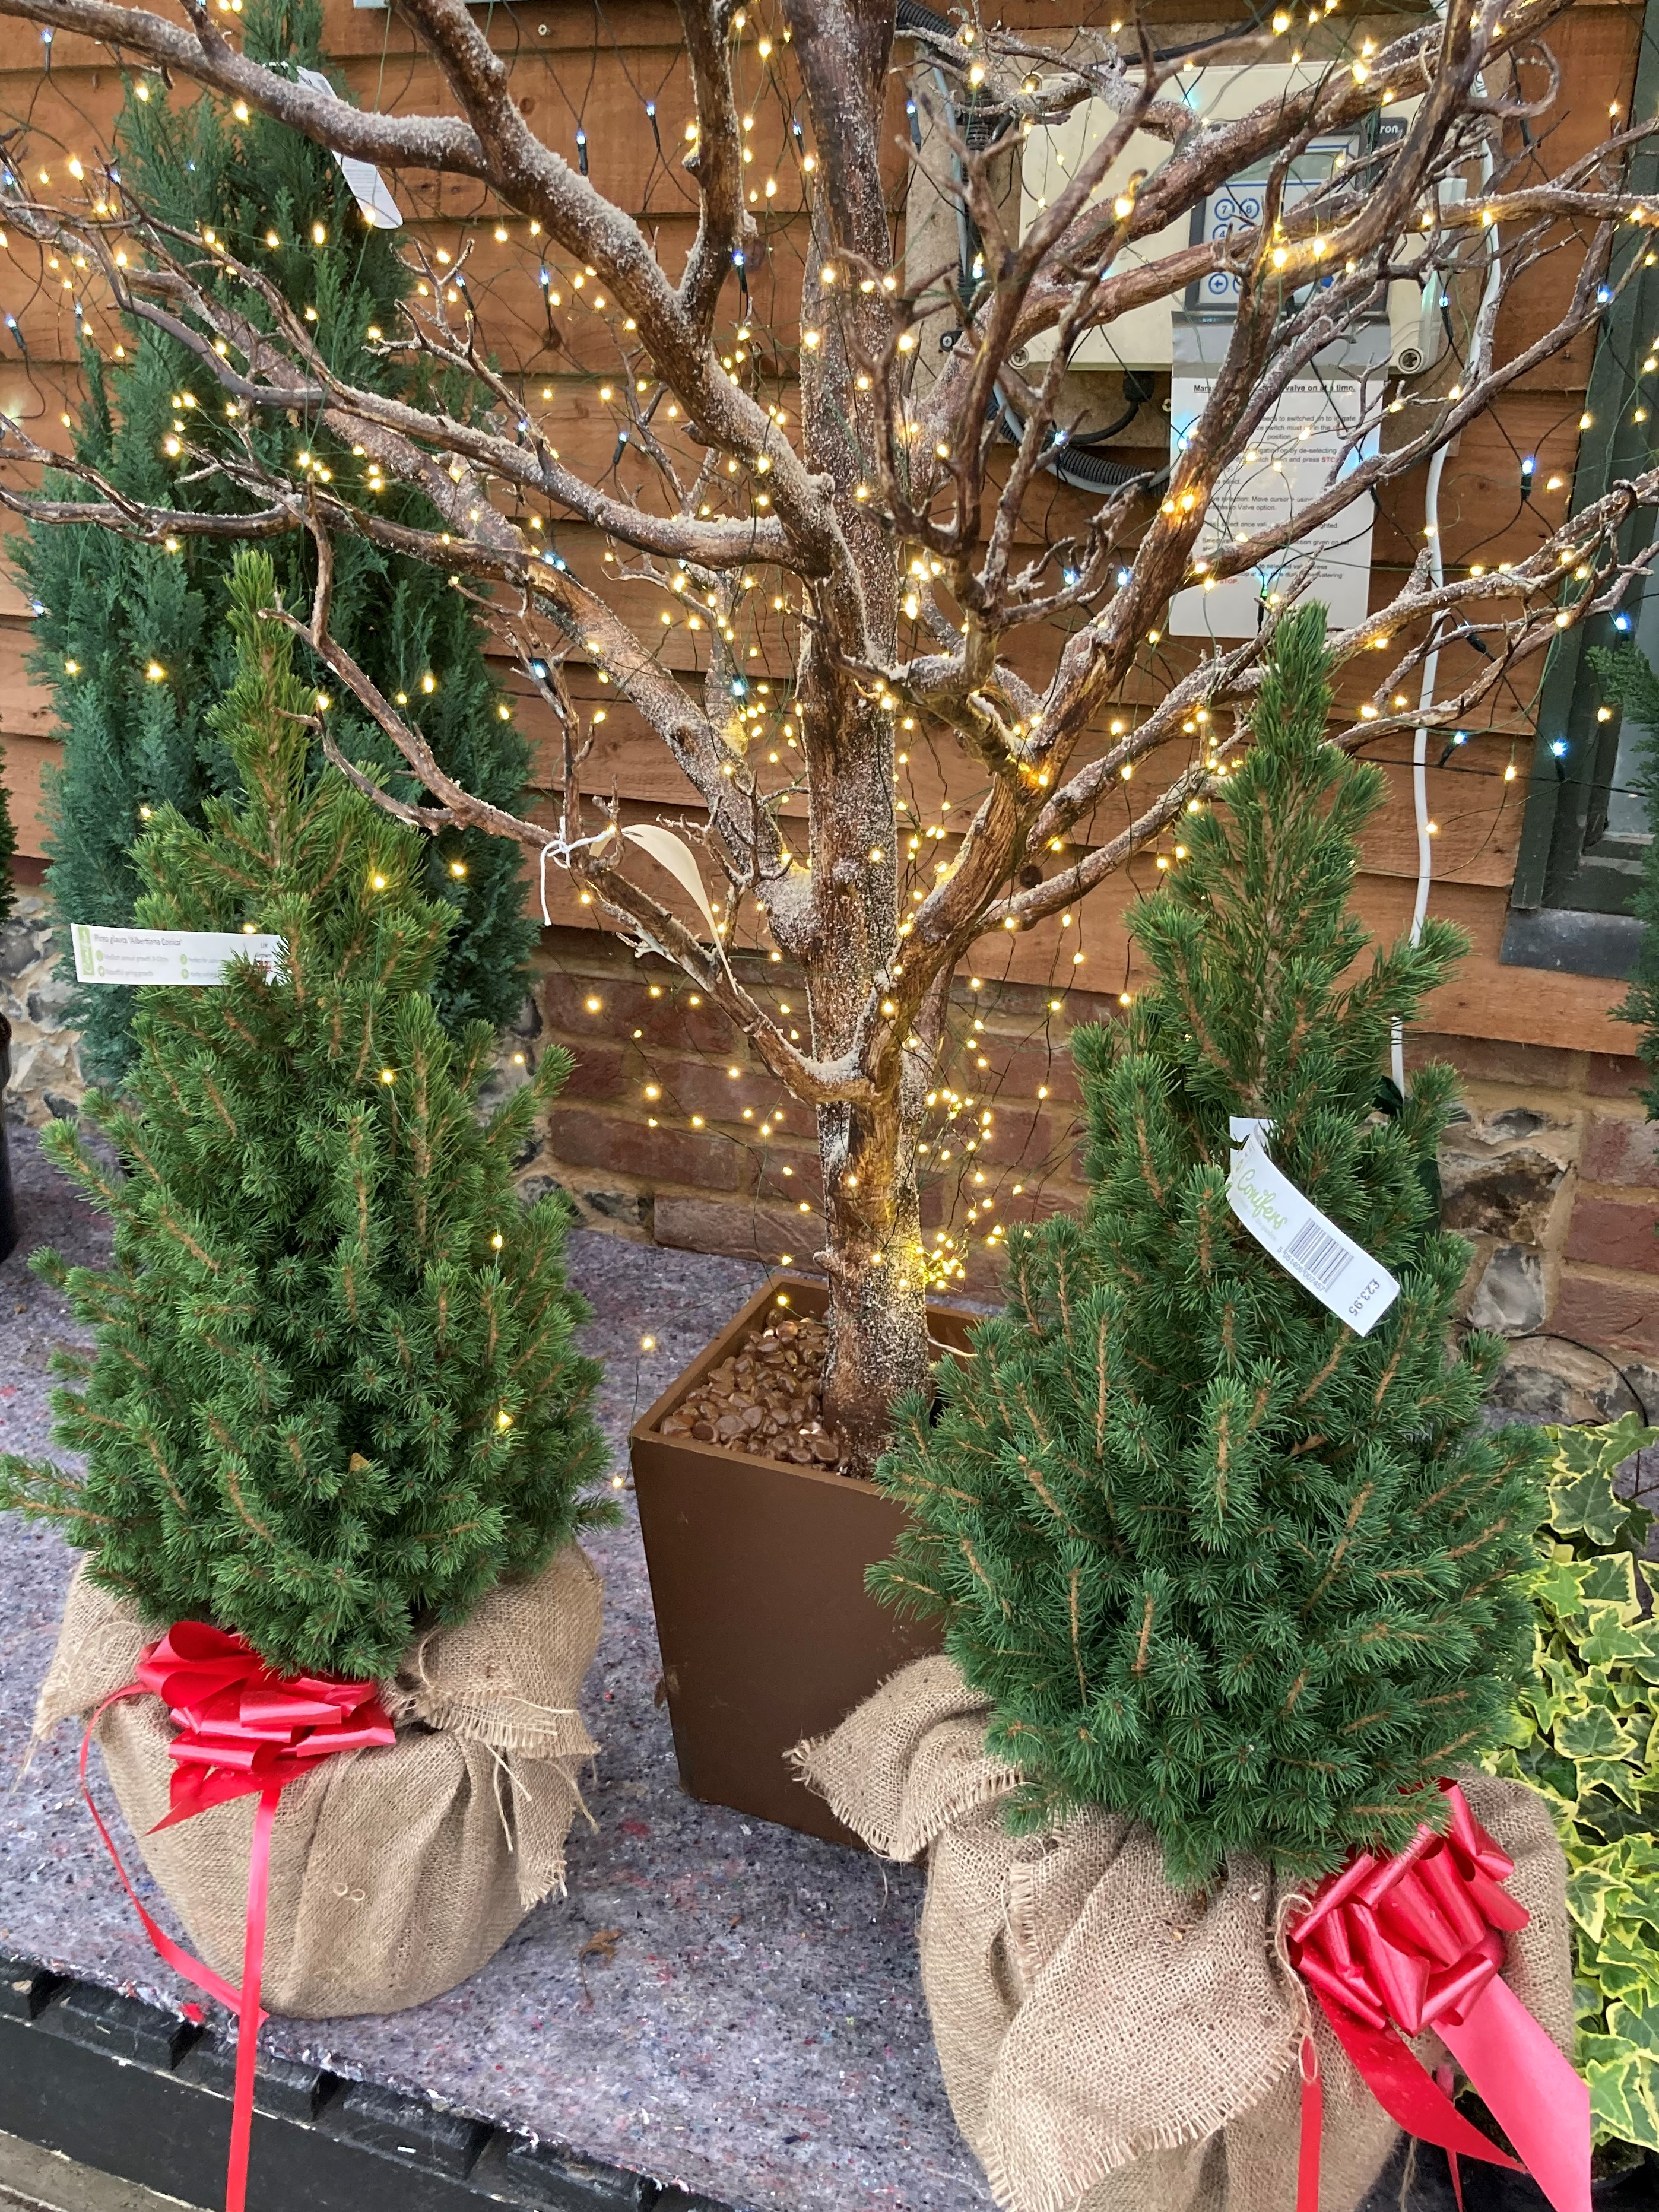 Christmas Trees: Cut trees due w/c 23rd November. Some potted trees available NOW!